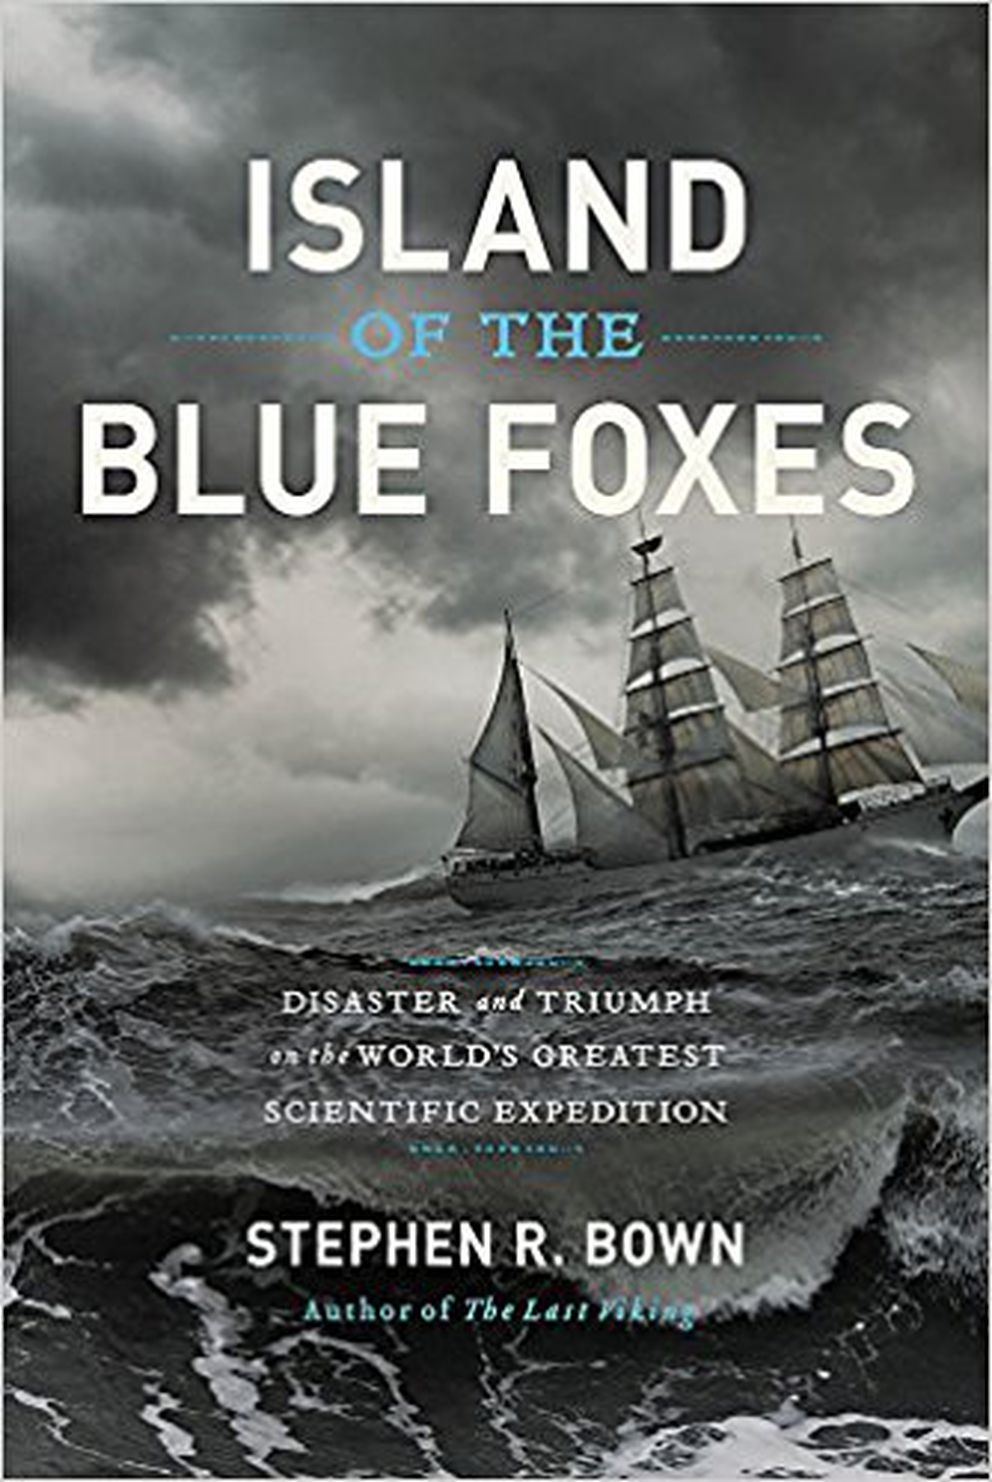 """""""Island of the Blue Foxes: Disaster and Triumph on the World's Greatest Scientific Expedition,"""" by Stephen R. Bown"""